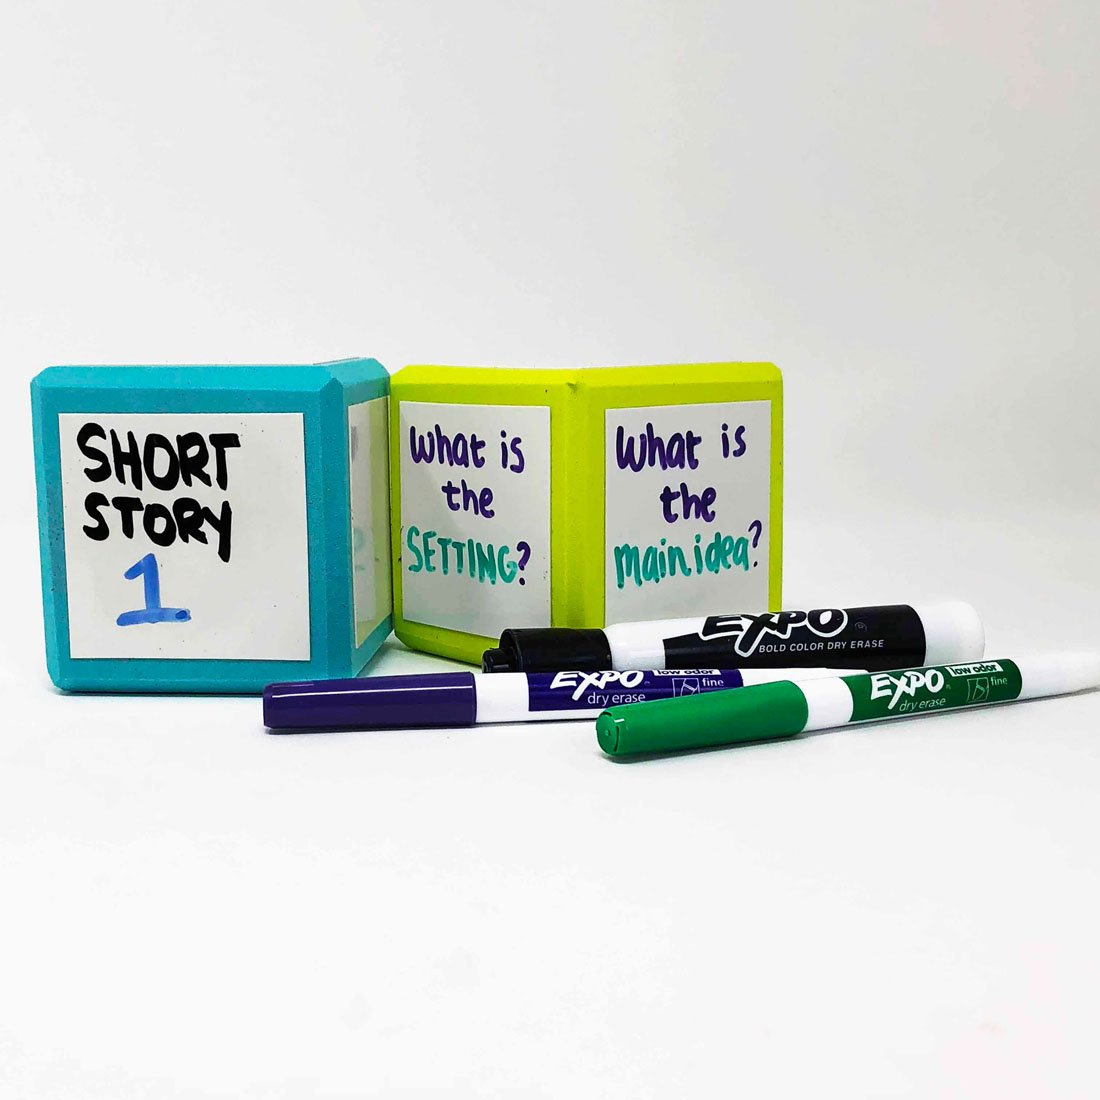 story-creating-dry-erase-dice-written-in-expo-marker.jpg